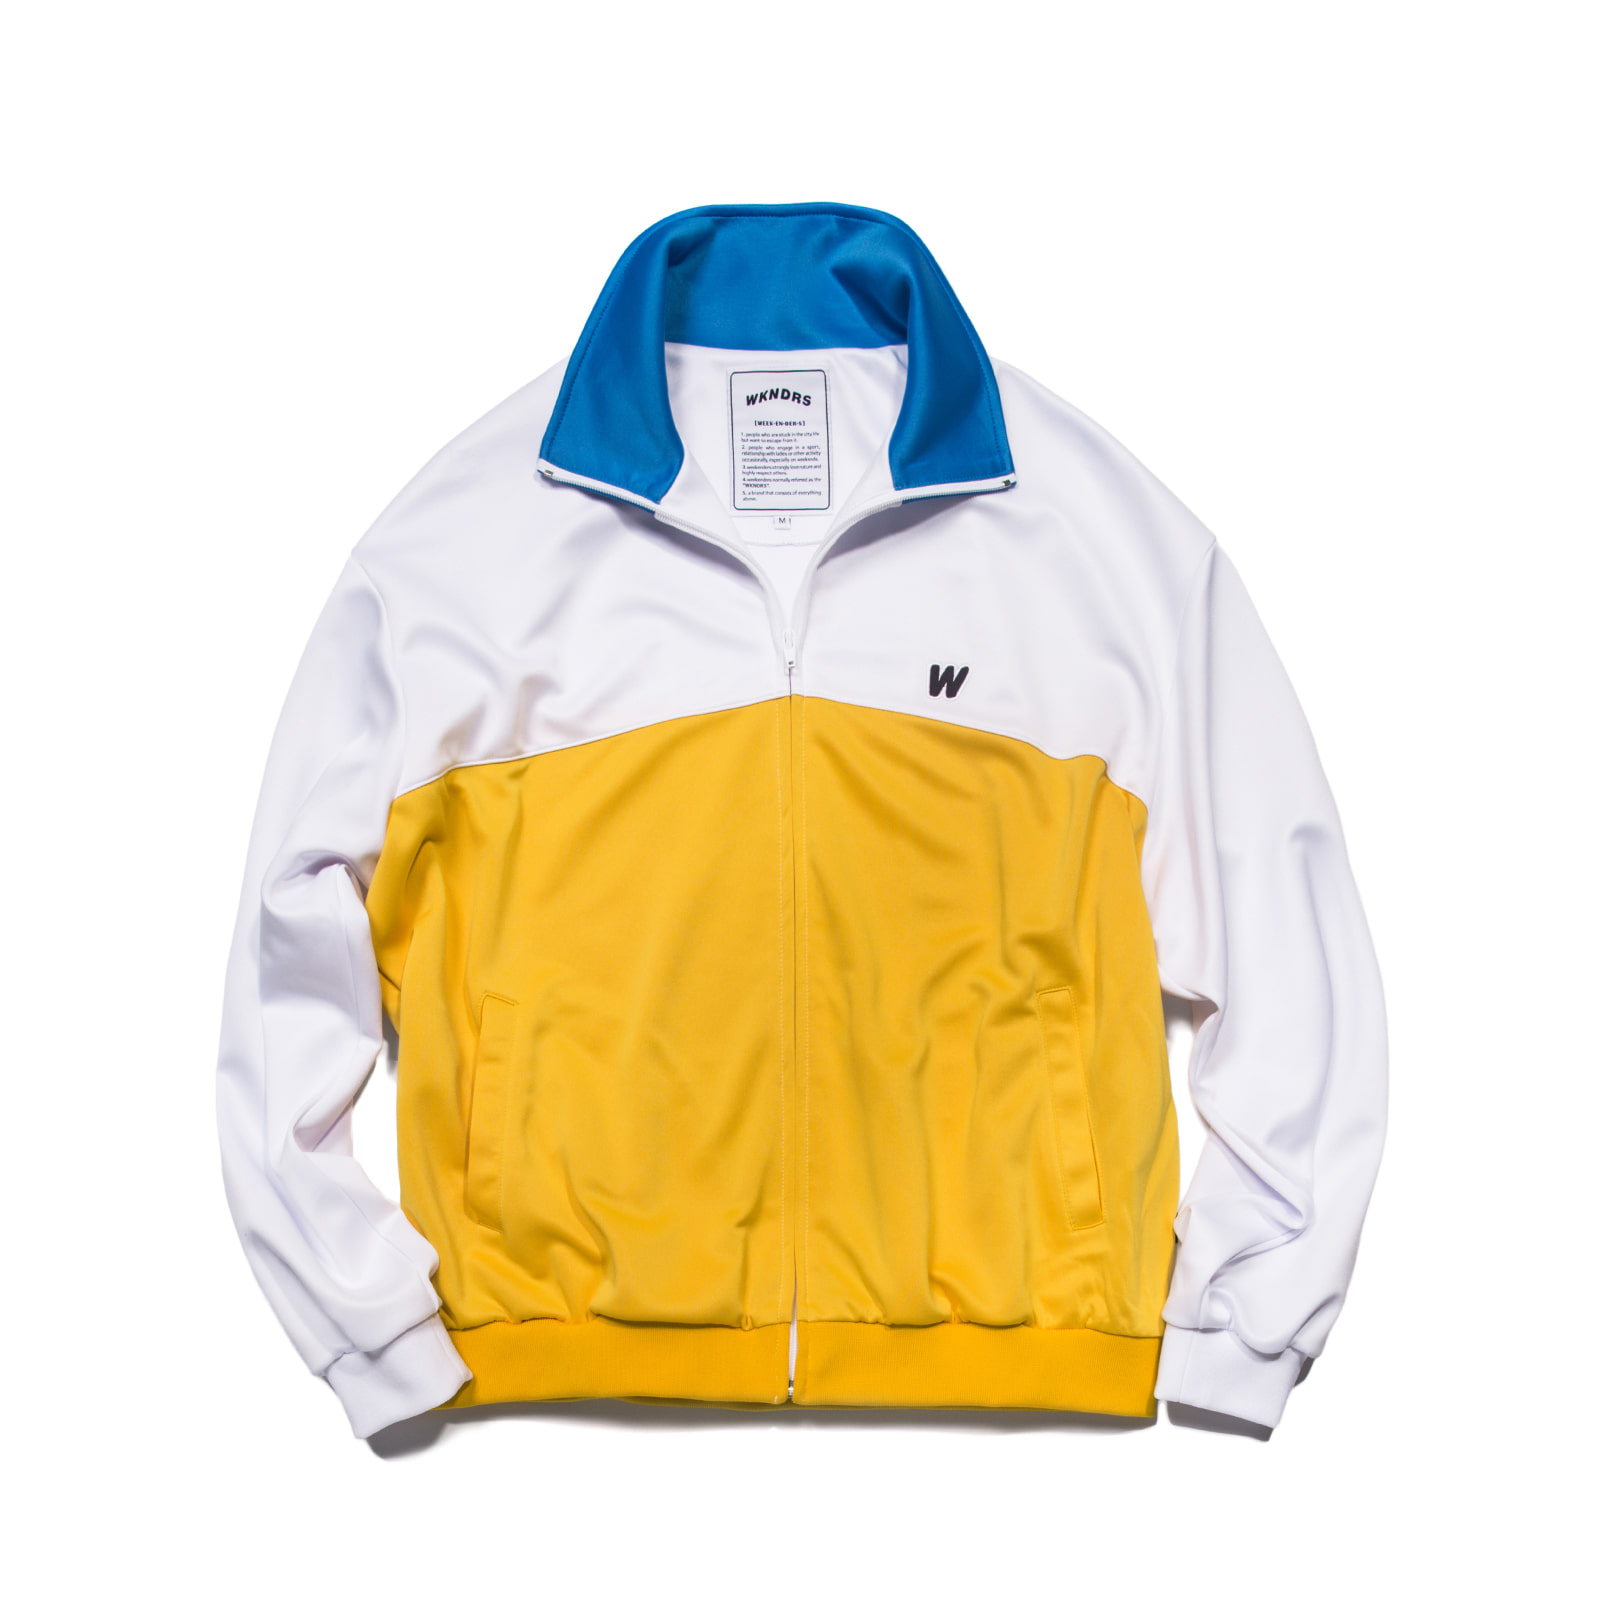 WKNDRS TRACK JACKET (YELLOW)